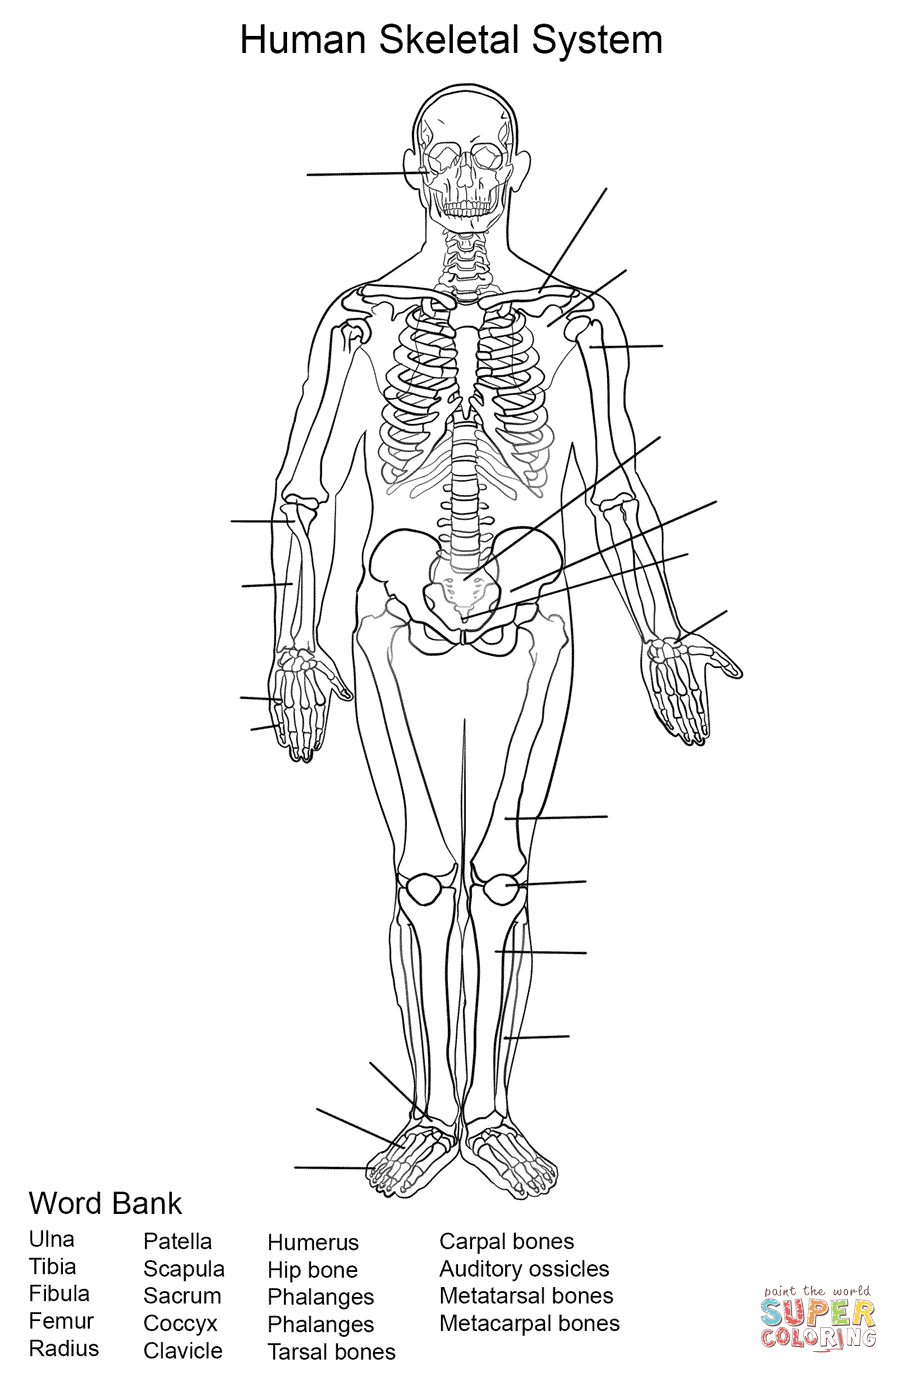 skeletal system coloring pages human skeletal system worksheet coloring page free skeletal system coloring pages